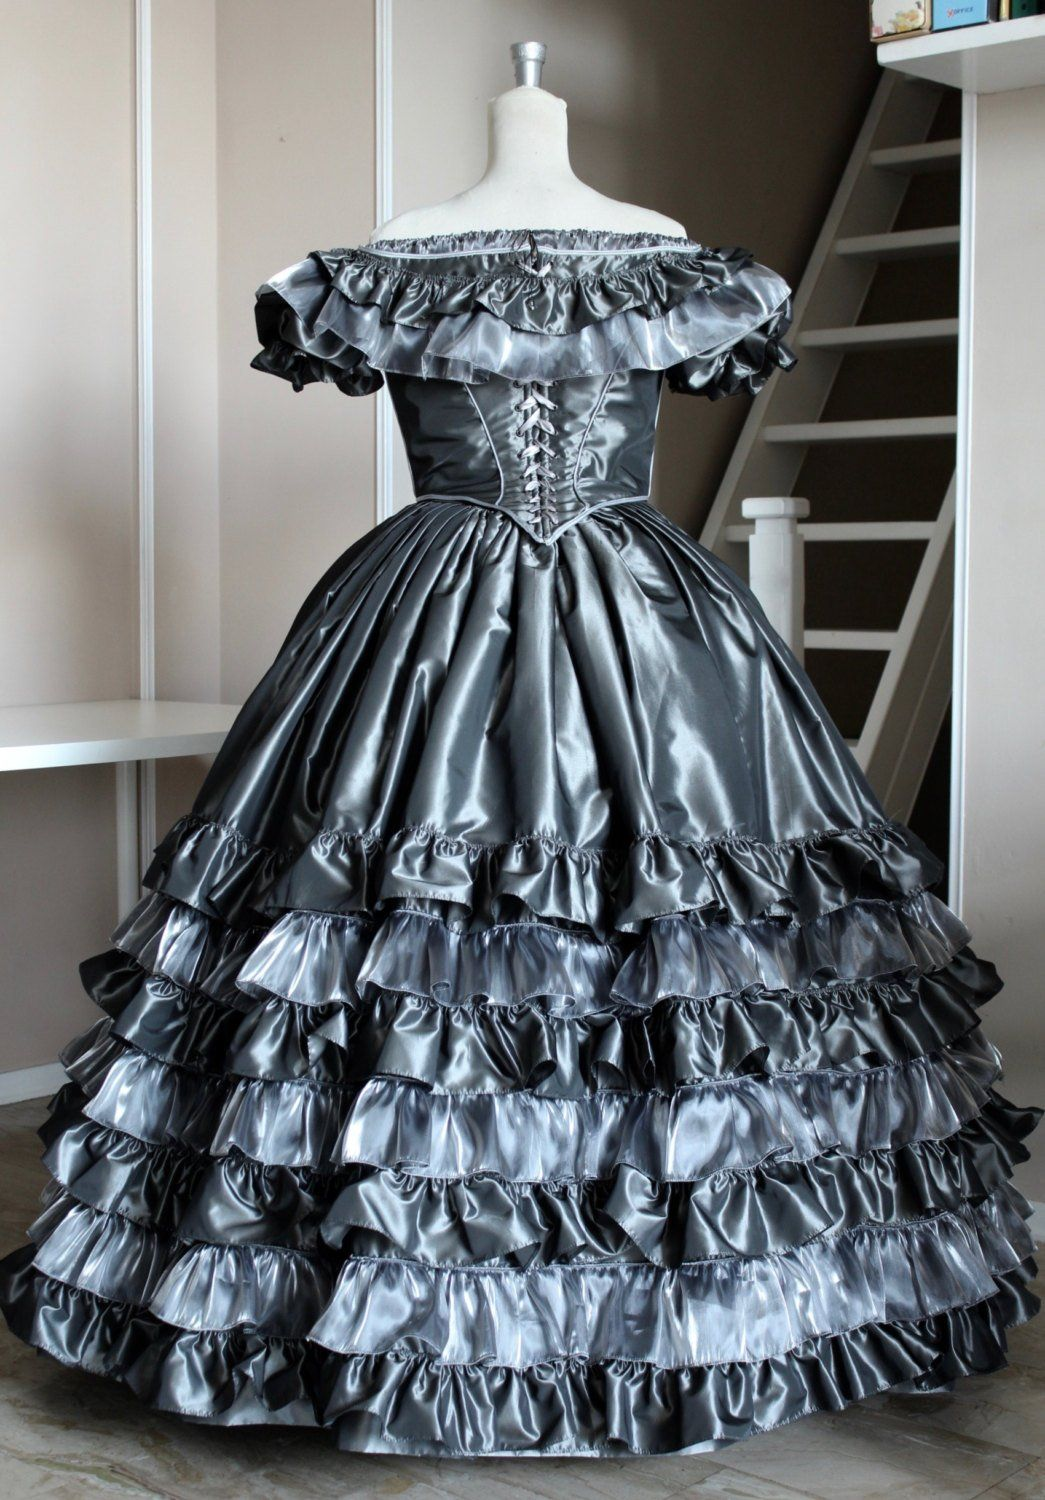 Victorian Ball Gown In Grey Taffeta And Organza Silver 1860 Ball Gown Model Annalisa Ball Gowns Victorian Ball Gowns Victorian Ball Gown [ 1500 x 1045 Pixel ]